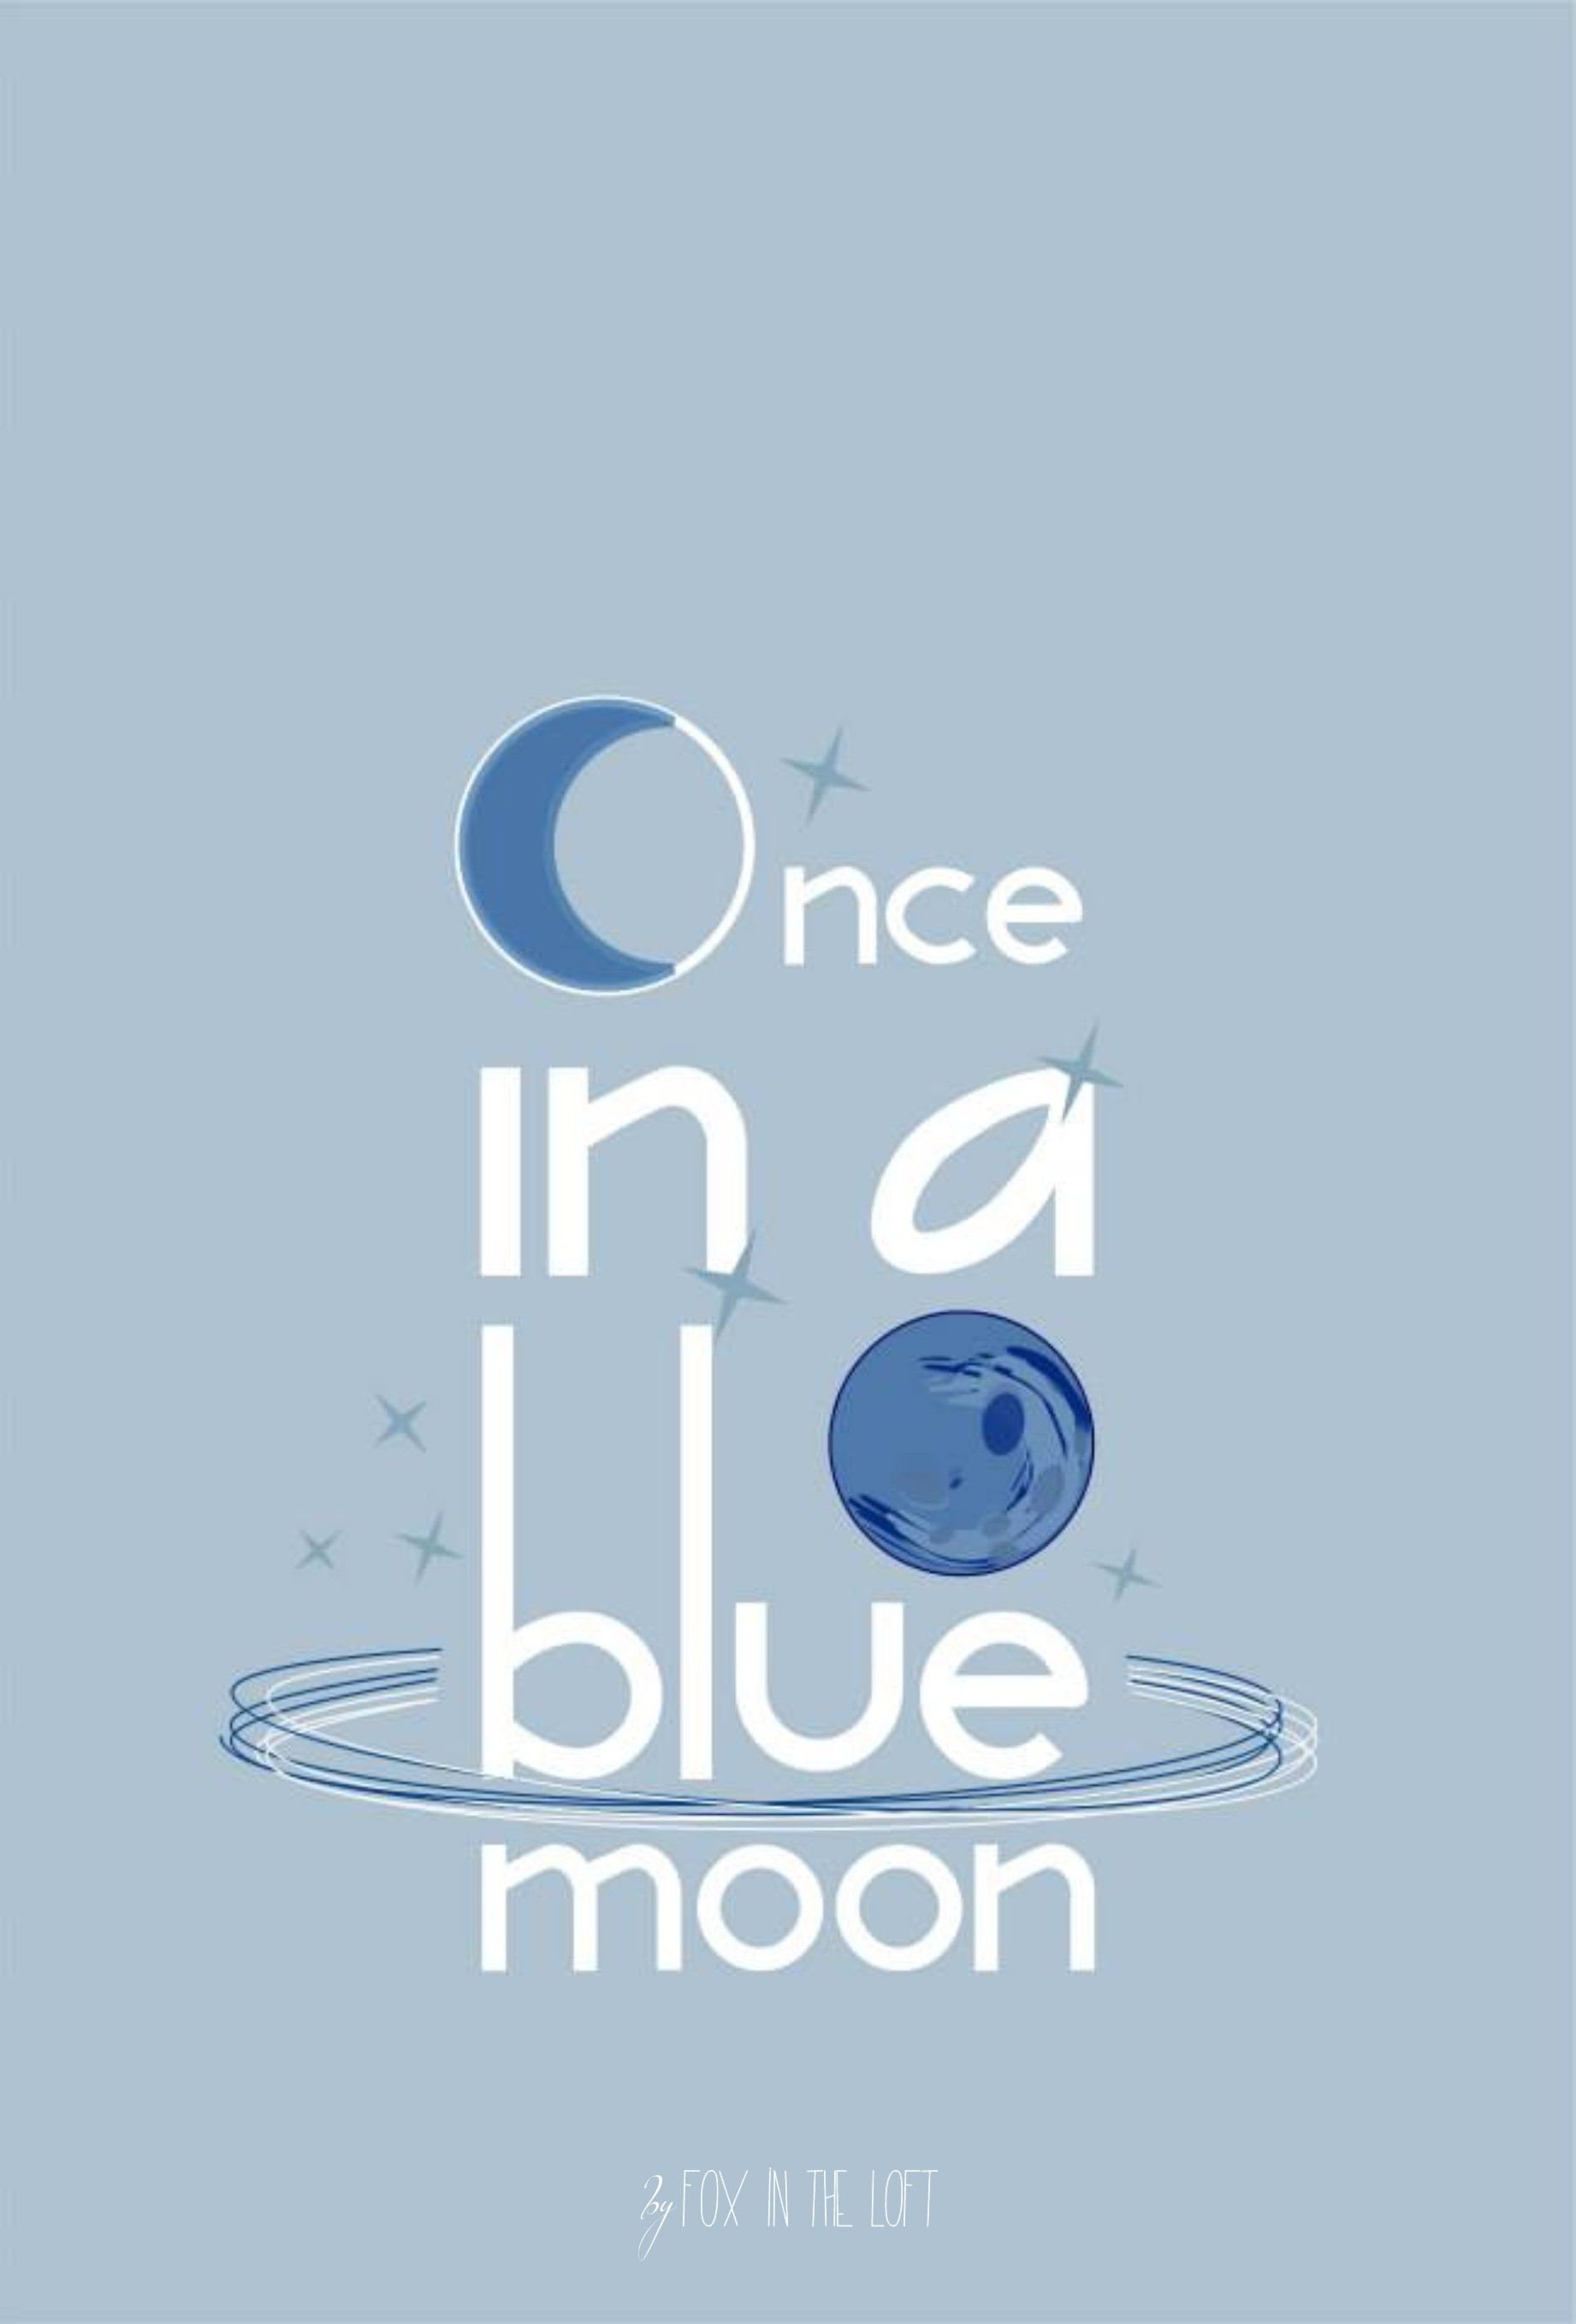 English Phrases And Idioms Once In A Blue Moon Typography